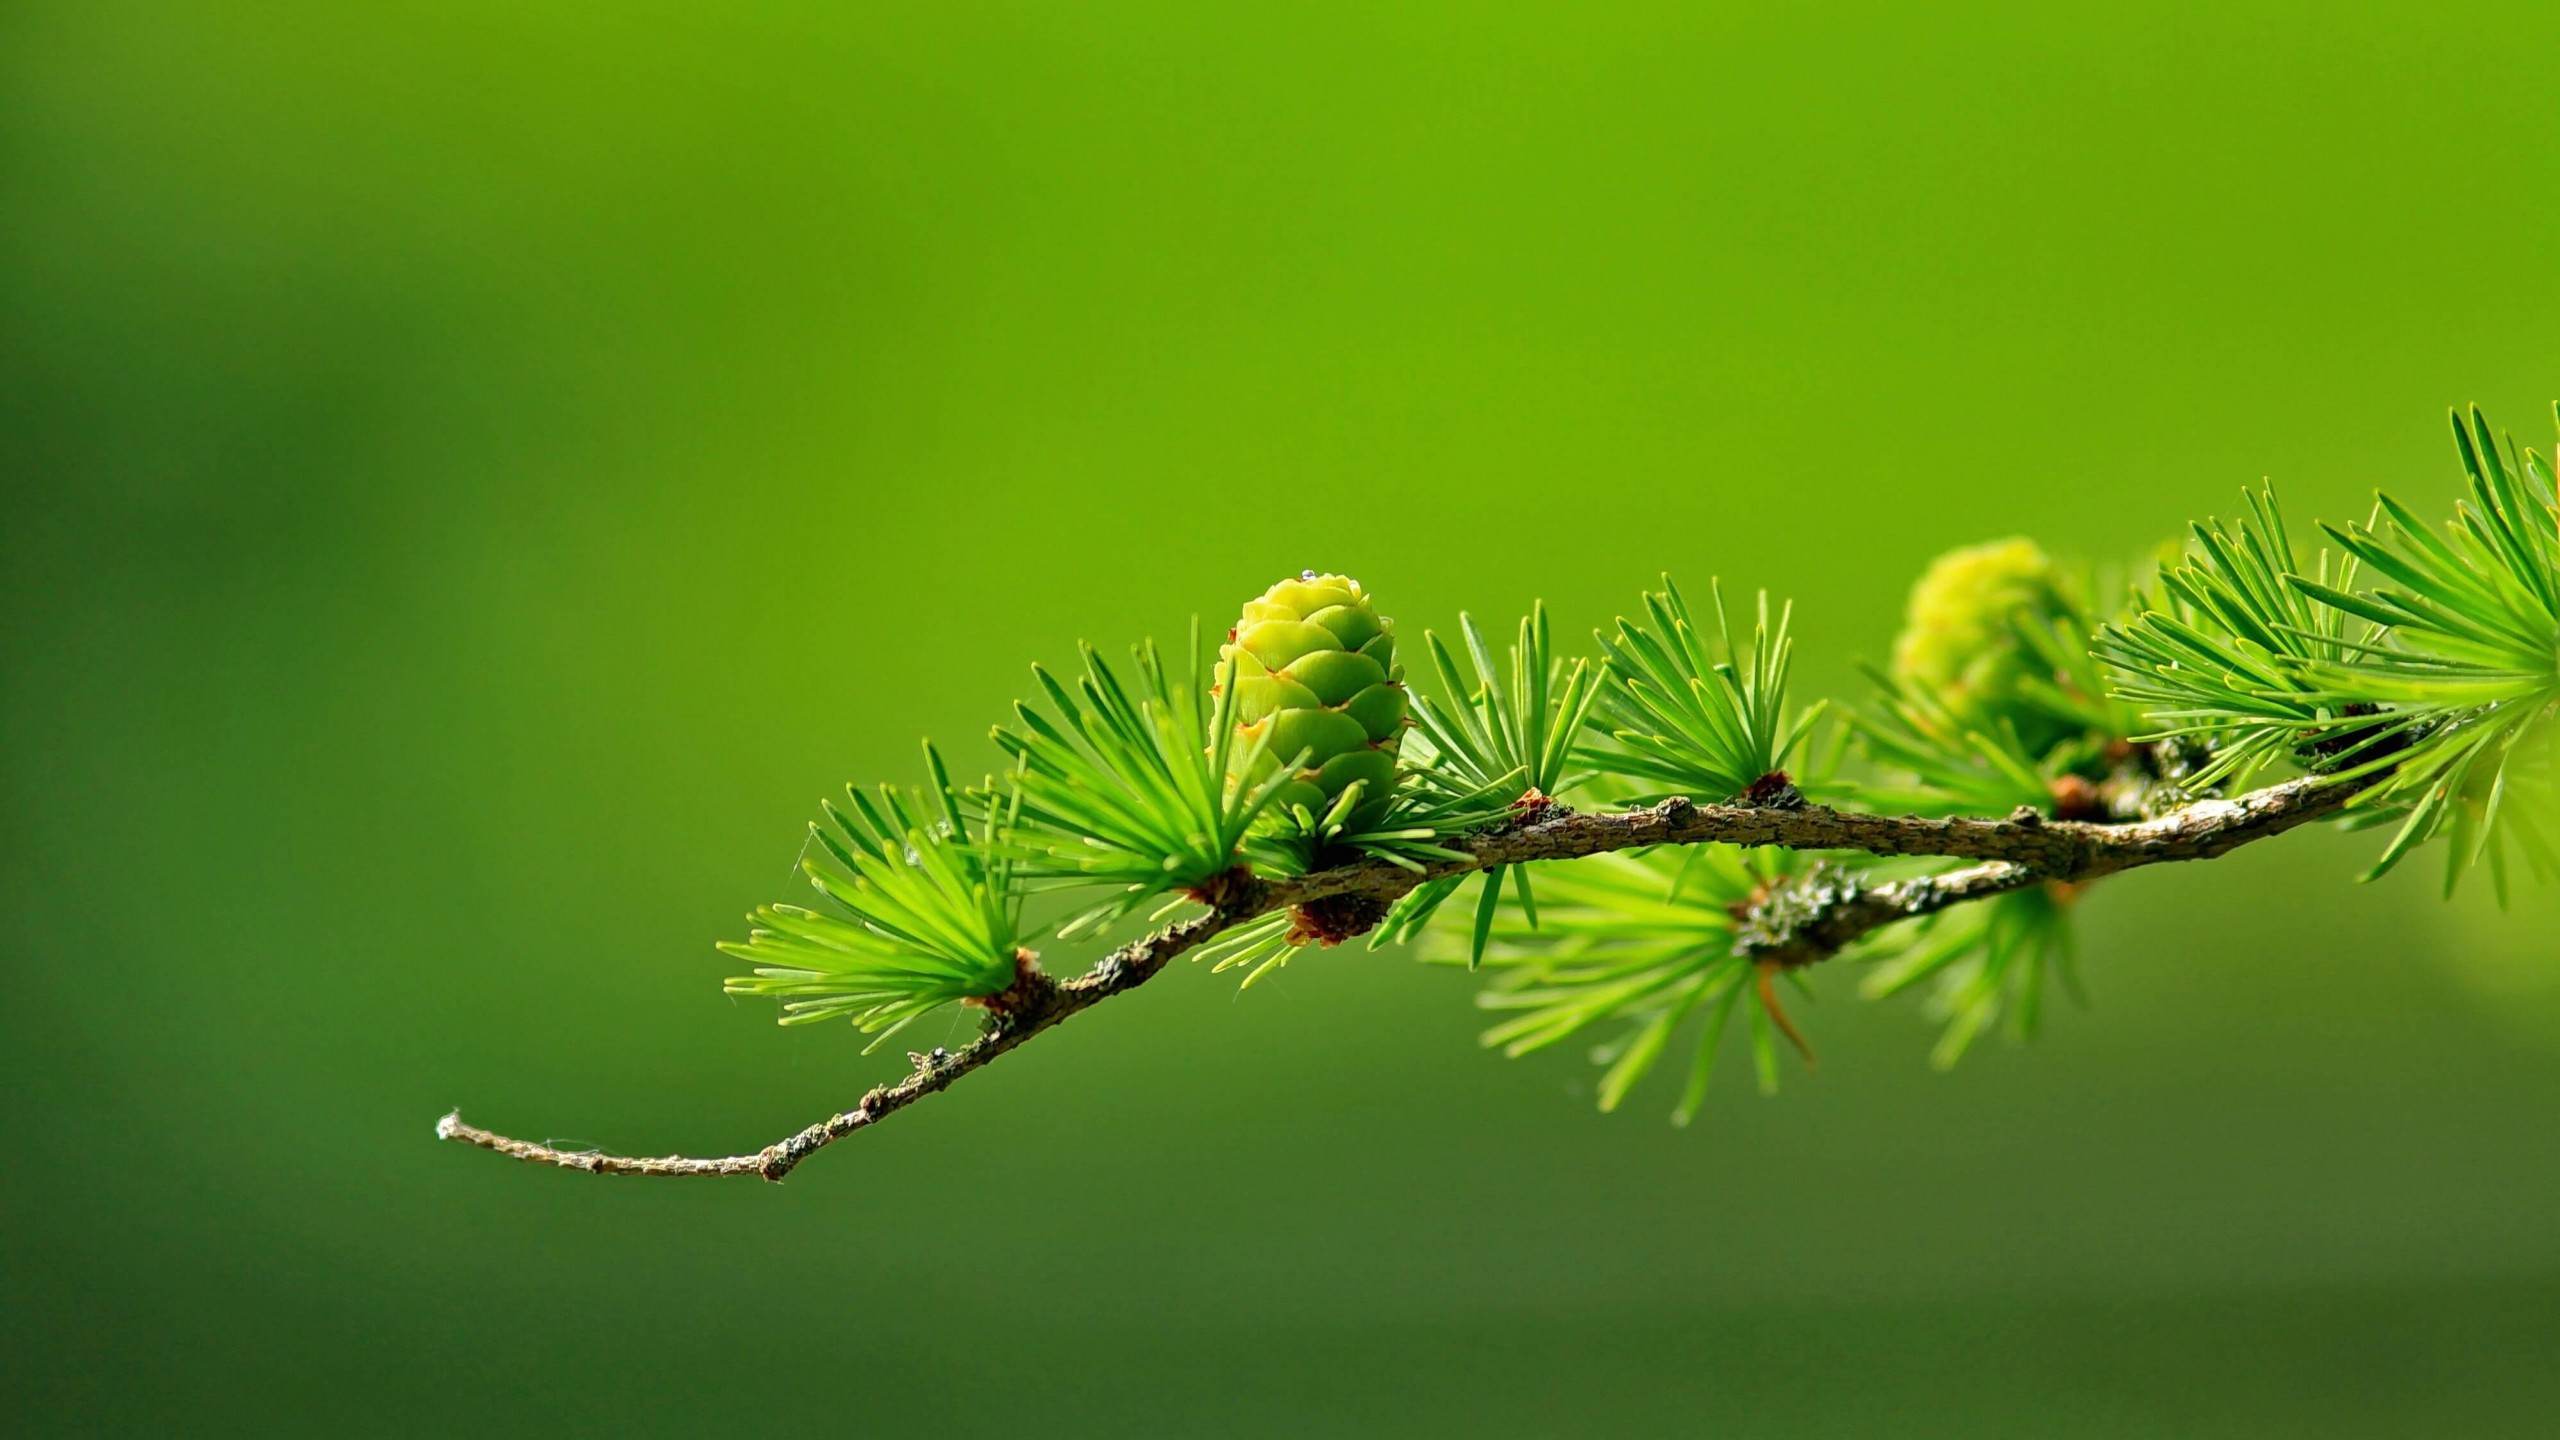 Branch of Pine Tree Wallpaper for Desktop 2560x1440